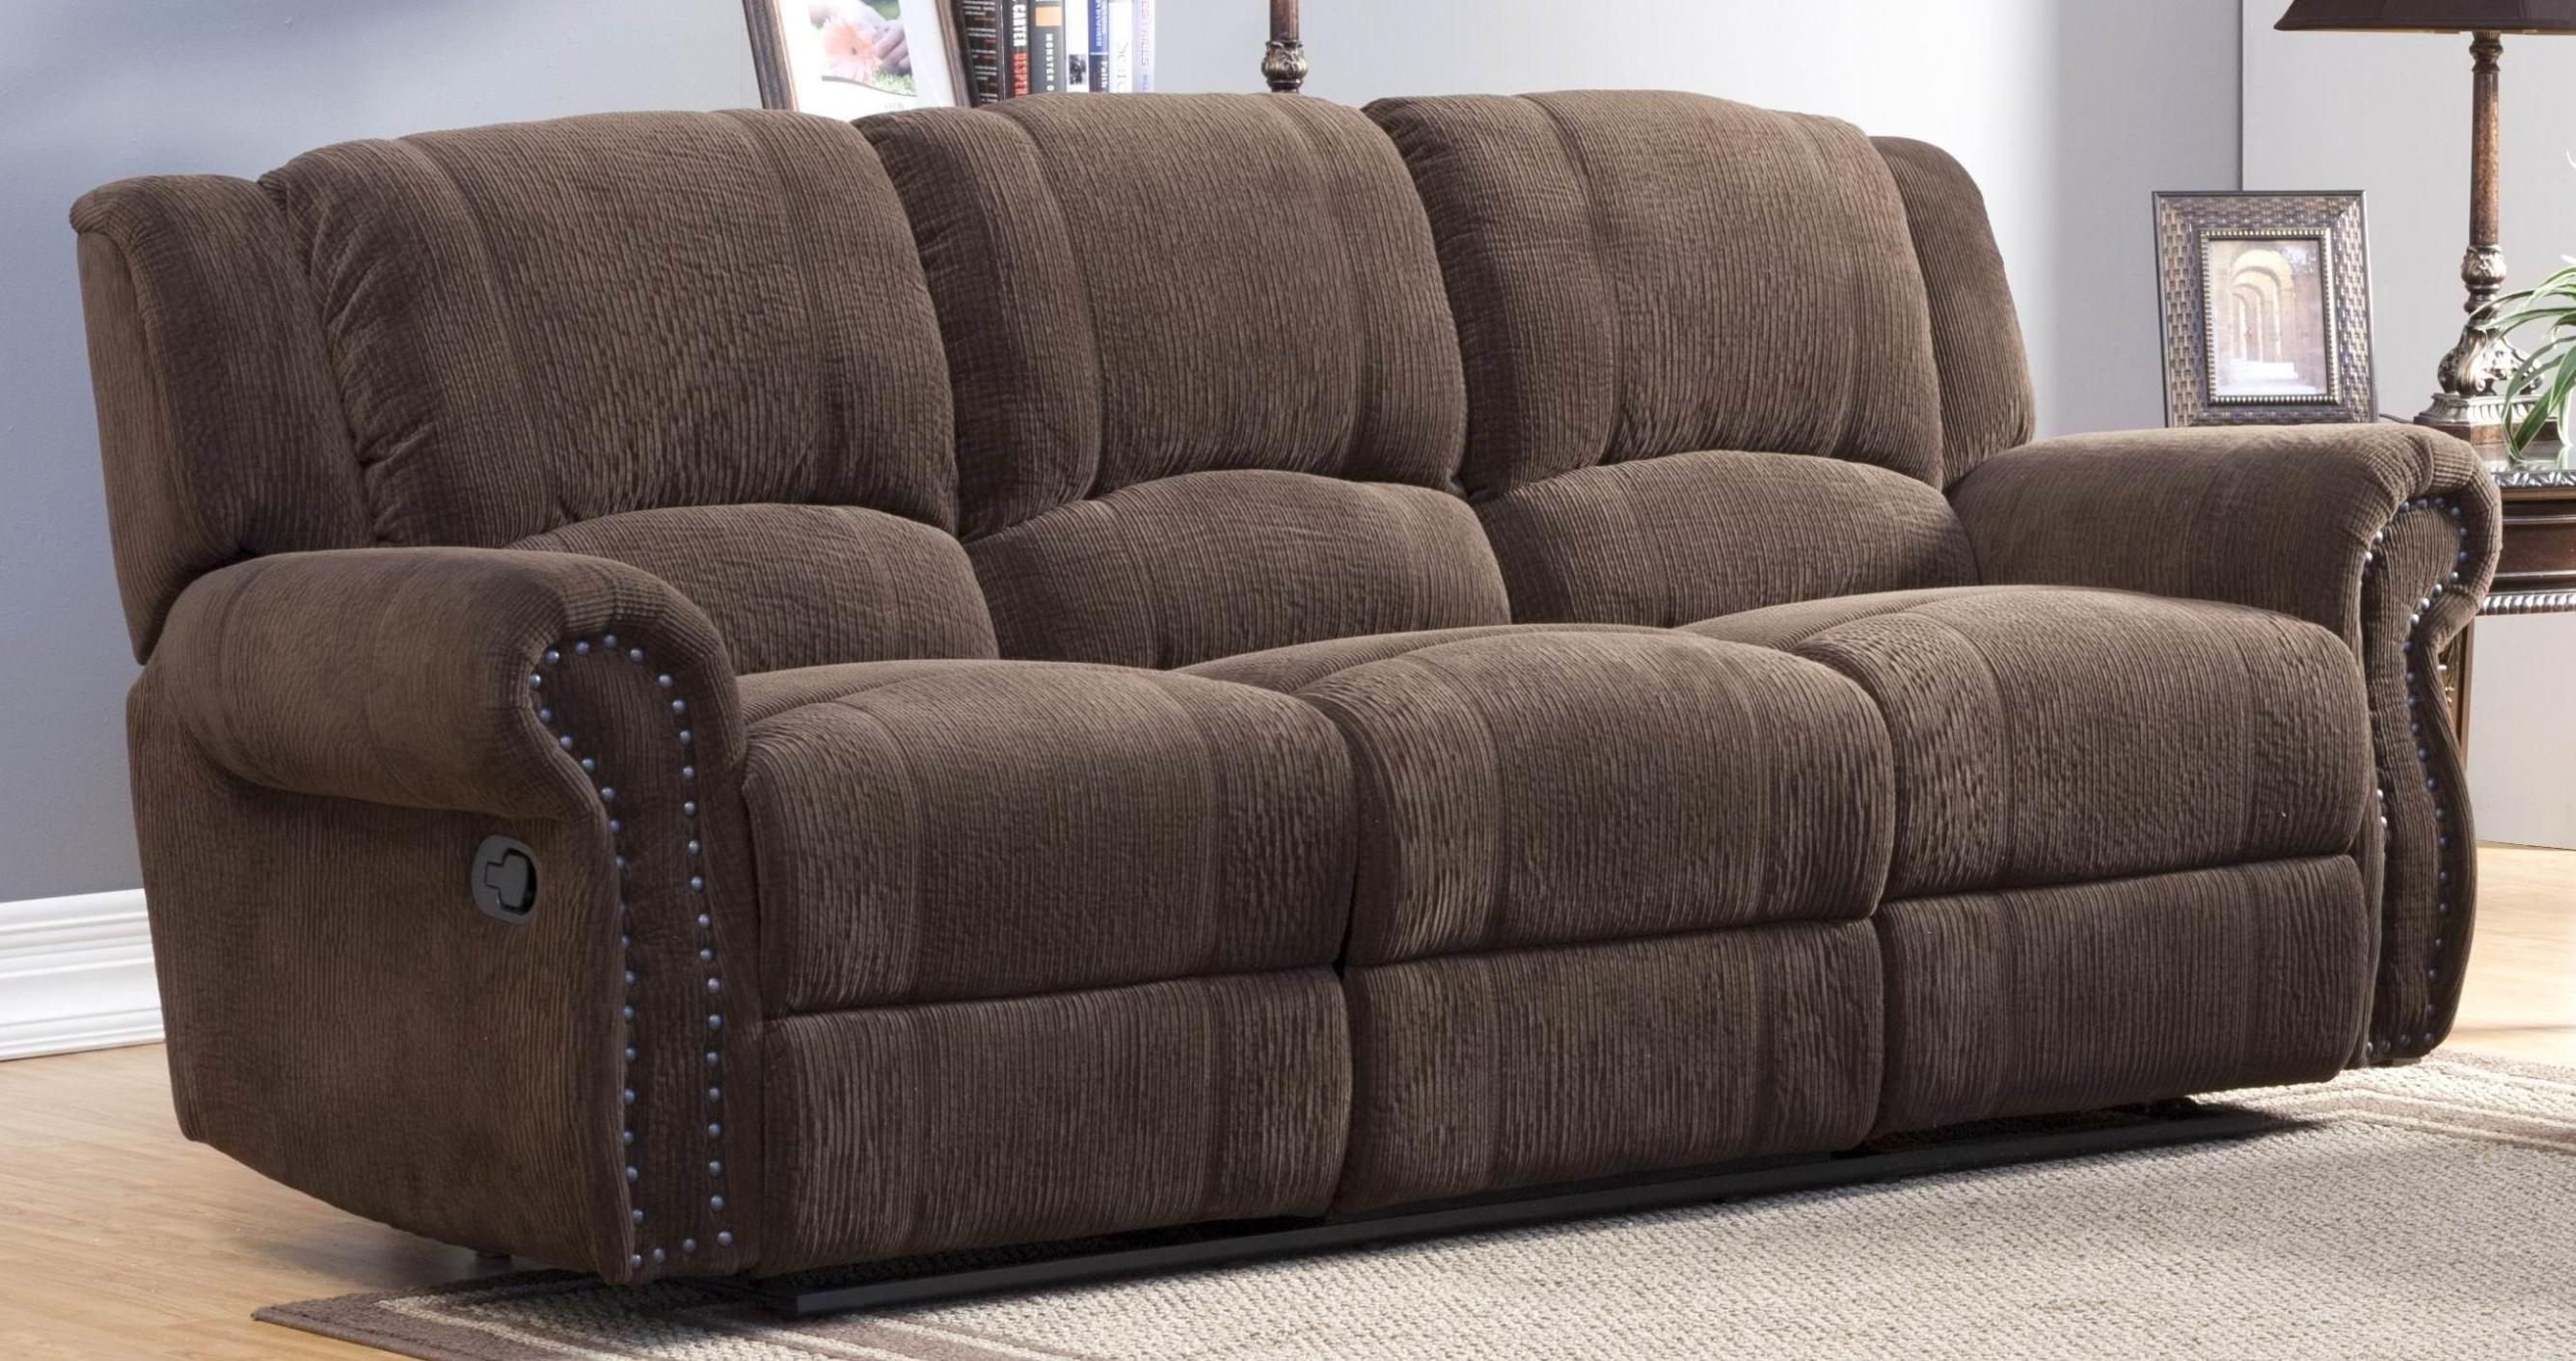 Leather Sectional Sofa With Recliner : Doherty House – Best Throughout Slipcover For Leather Sectional Sofas (View 17 of 21)